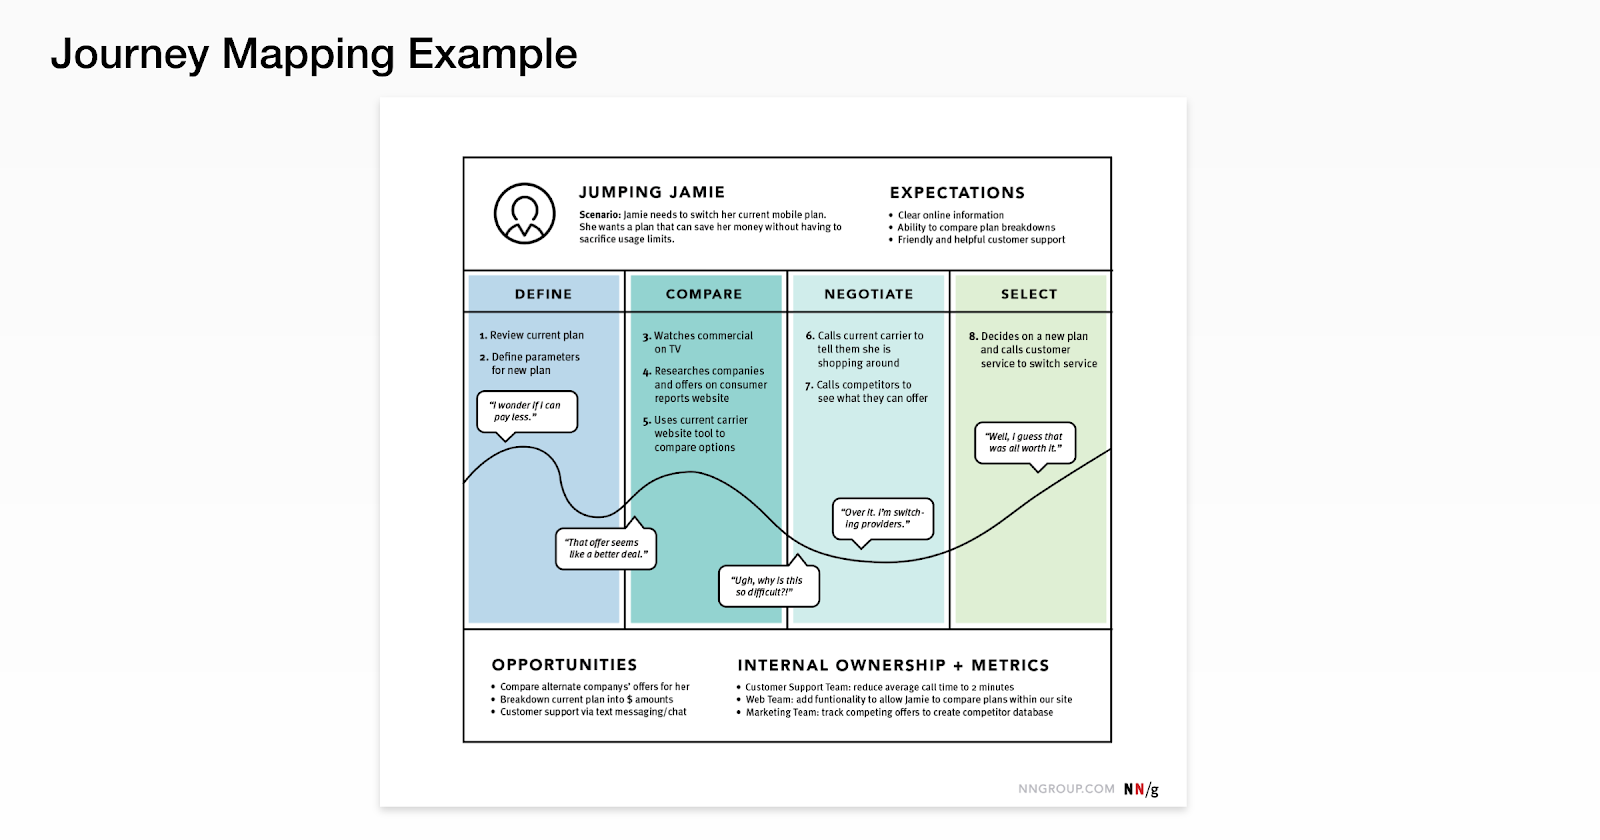 A journey map example with three phases: Define, Compare, Negotiate, Select.